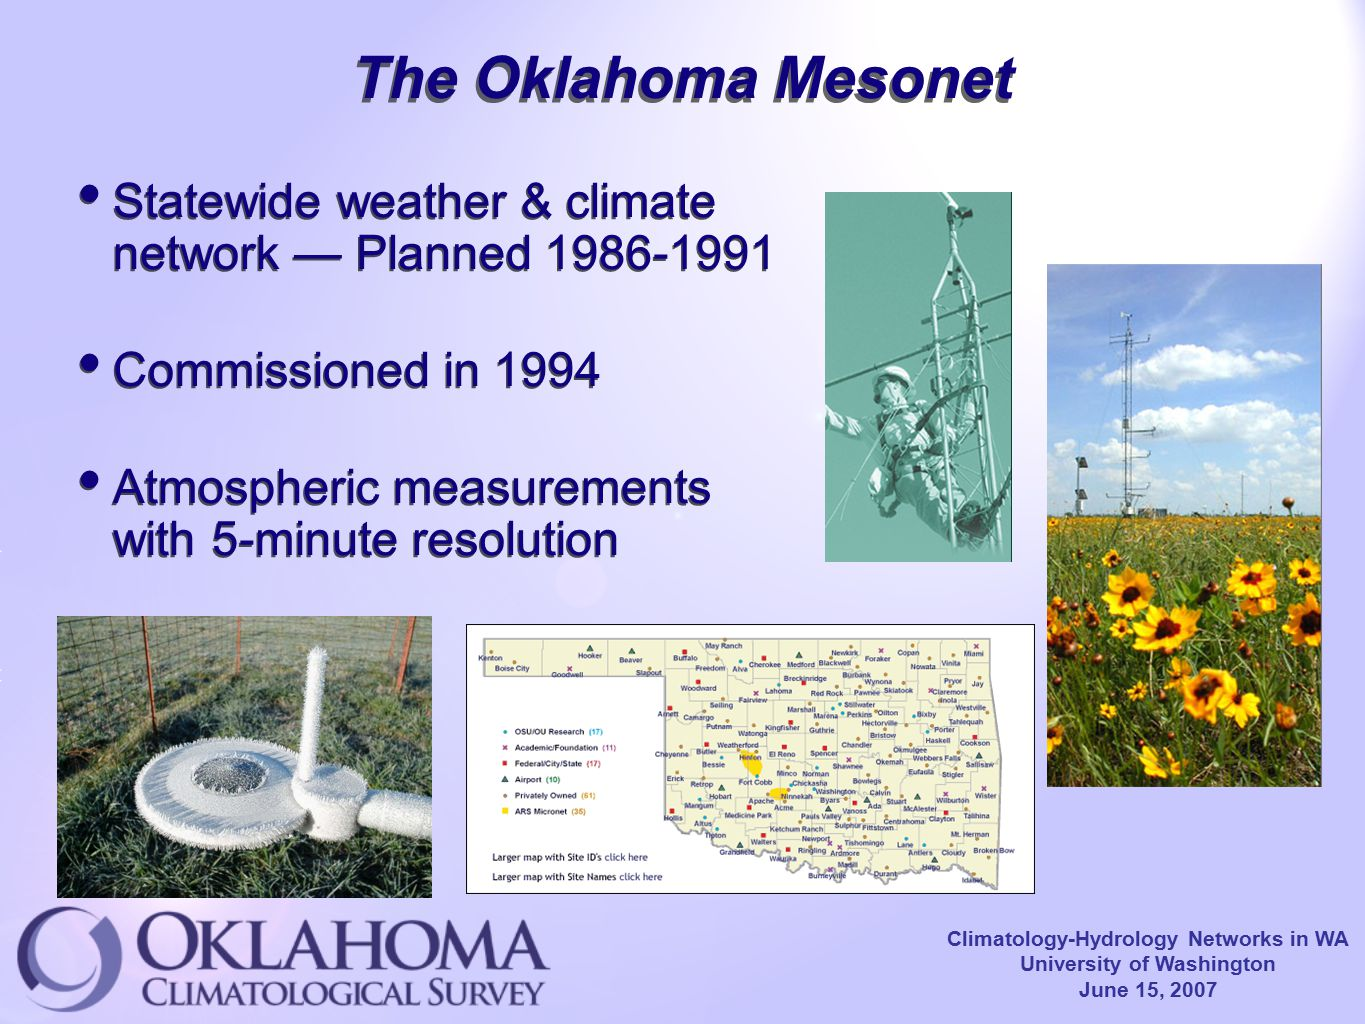 Climatology-Hydrology Networks in WA University of Washington June 15, 2007 The Keys to Our Success (National Research Council 2001) The blue ribbon panel believed the success of the Oklahoma Mesonet's was built upon five pillars: Users were involved from day one.